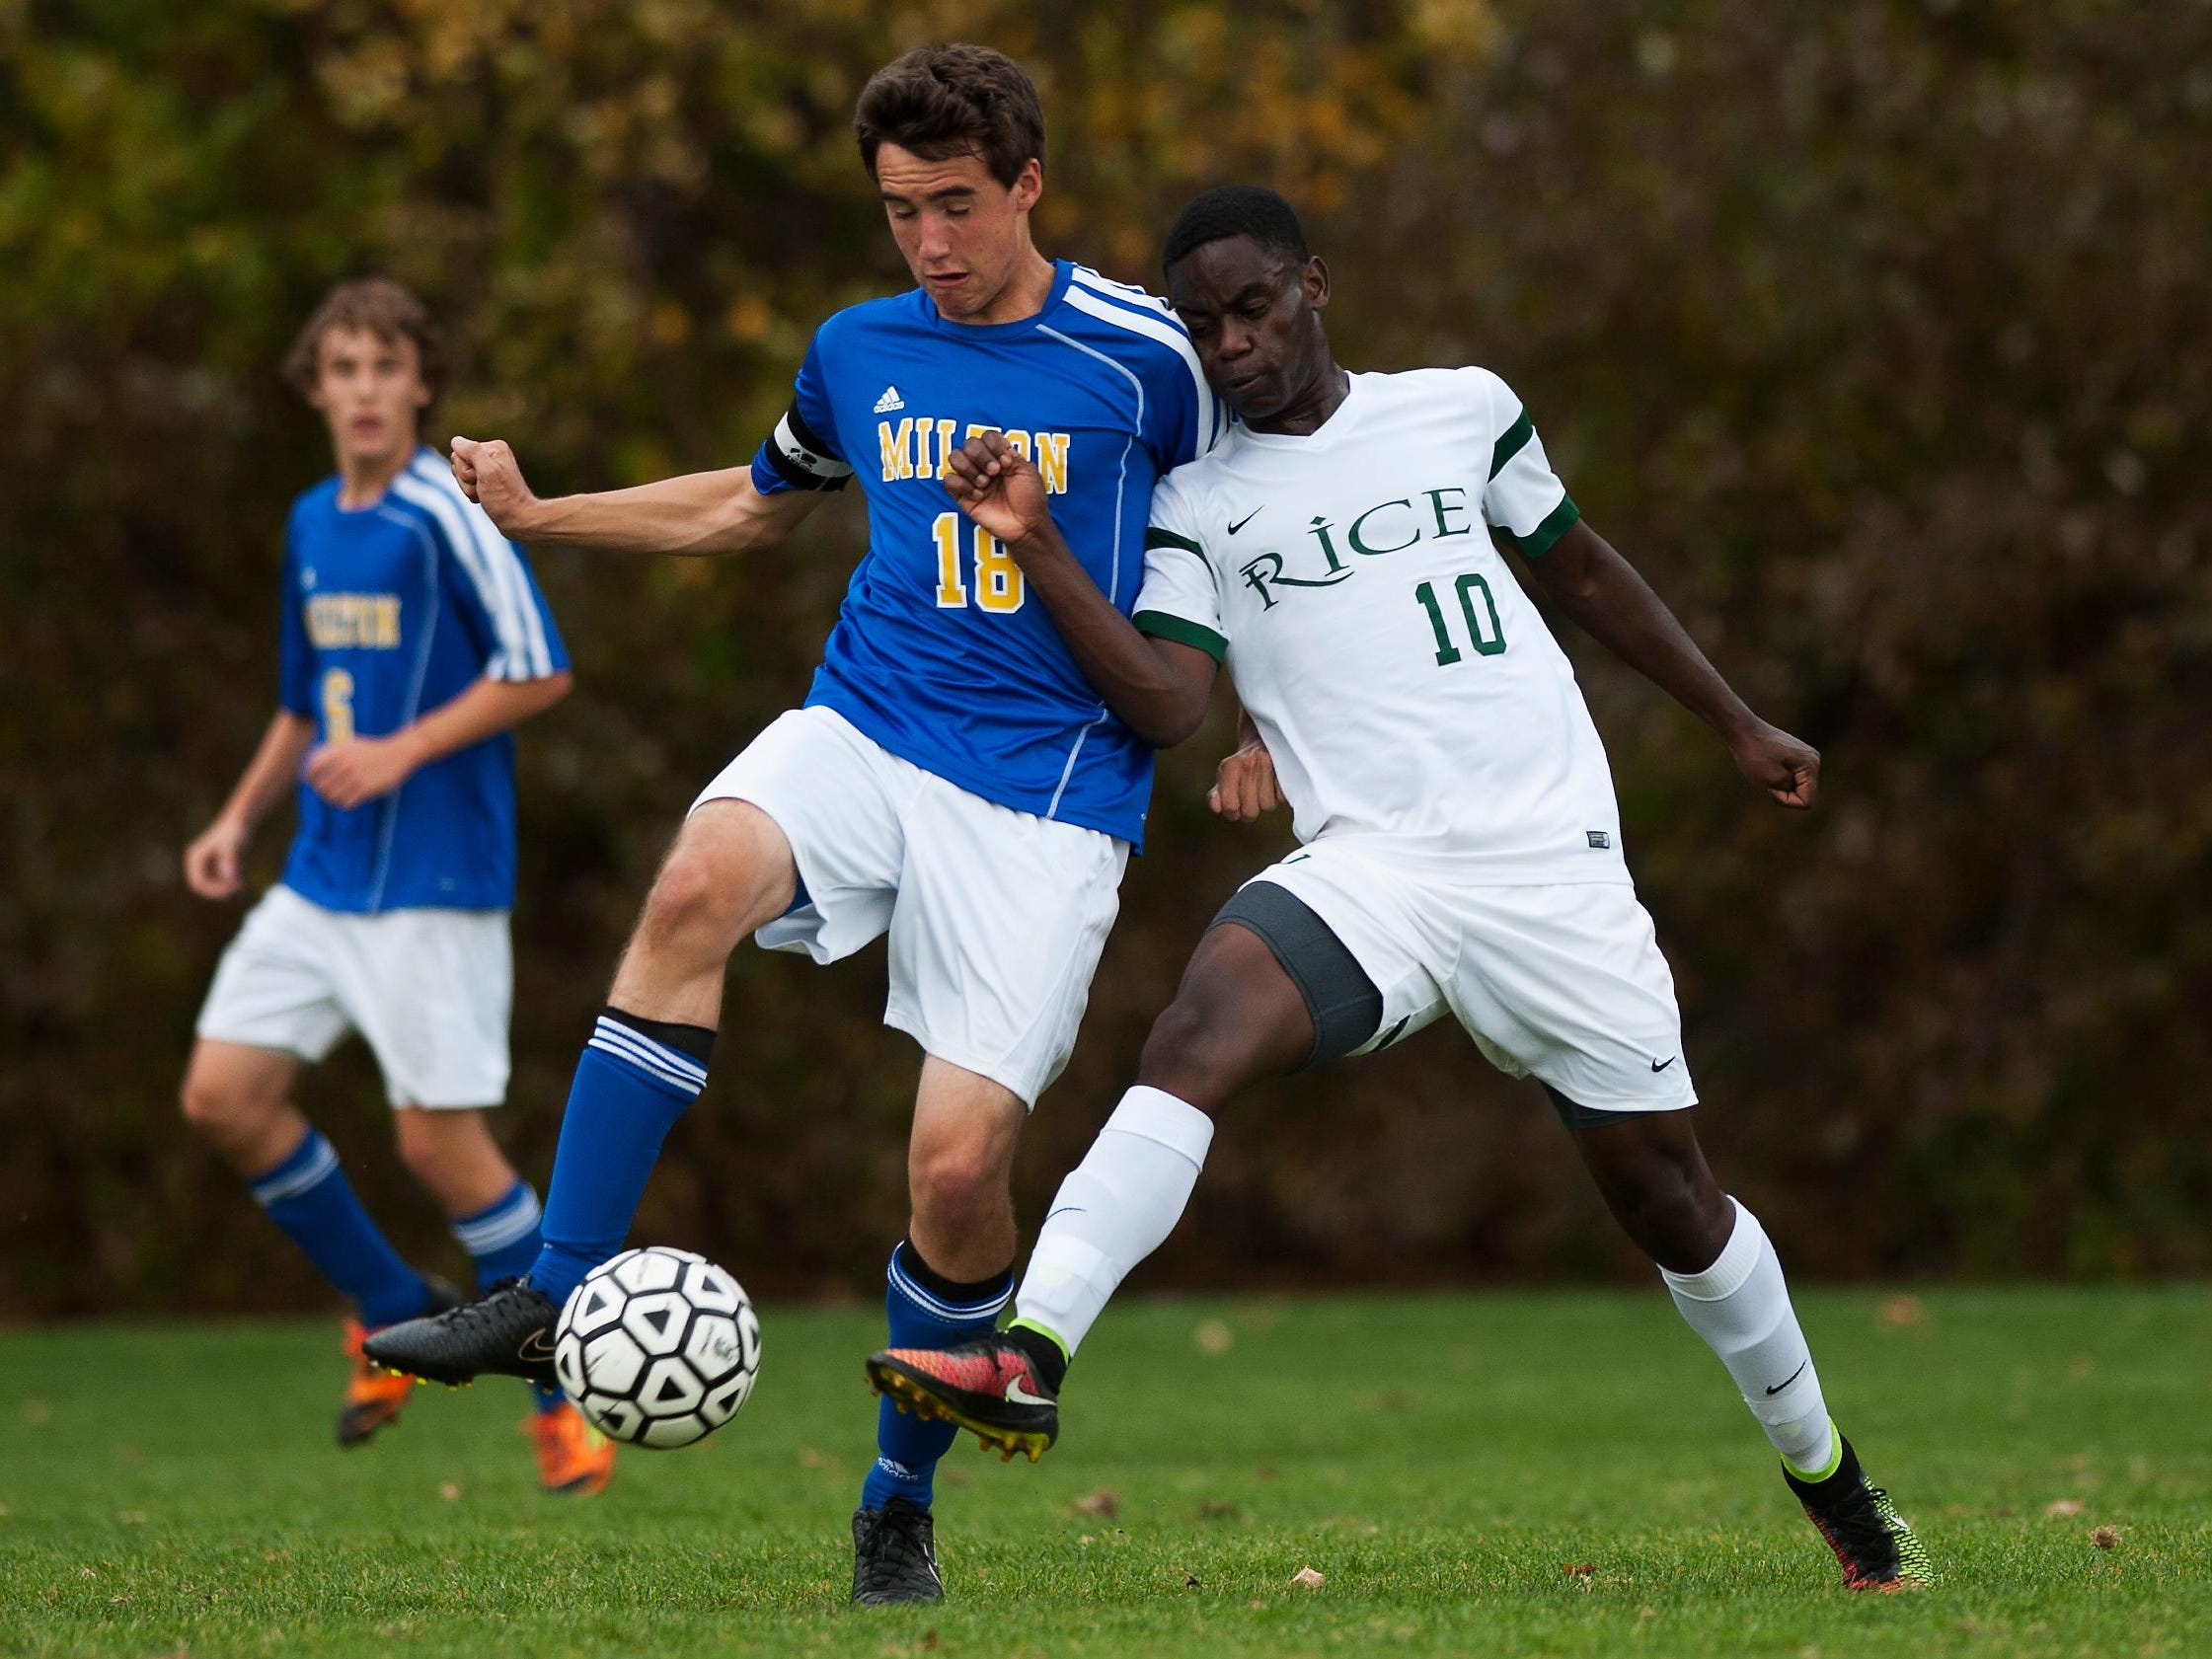 Rice's Hussein Hussein (10) battles for the ball with Milton's Eric Menard (18) during the boys varsity soccer game between the Milton Yellow Jackets and the Rice Green Knights at Rice High School on Wednesday October 15, 2014 in South Burlington, Vermont. (BRIAN JENKINS, for the Free Press)